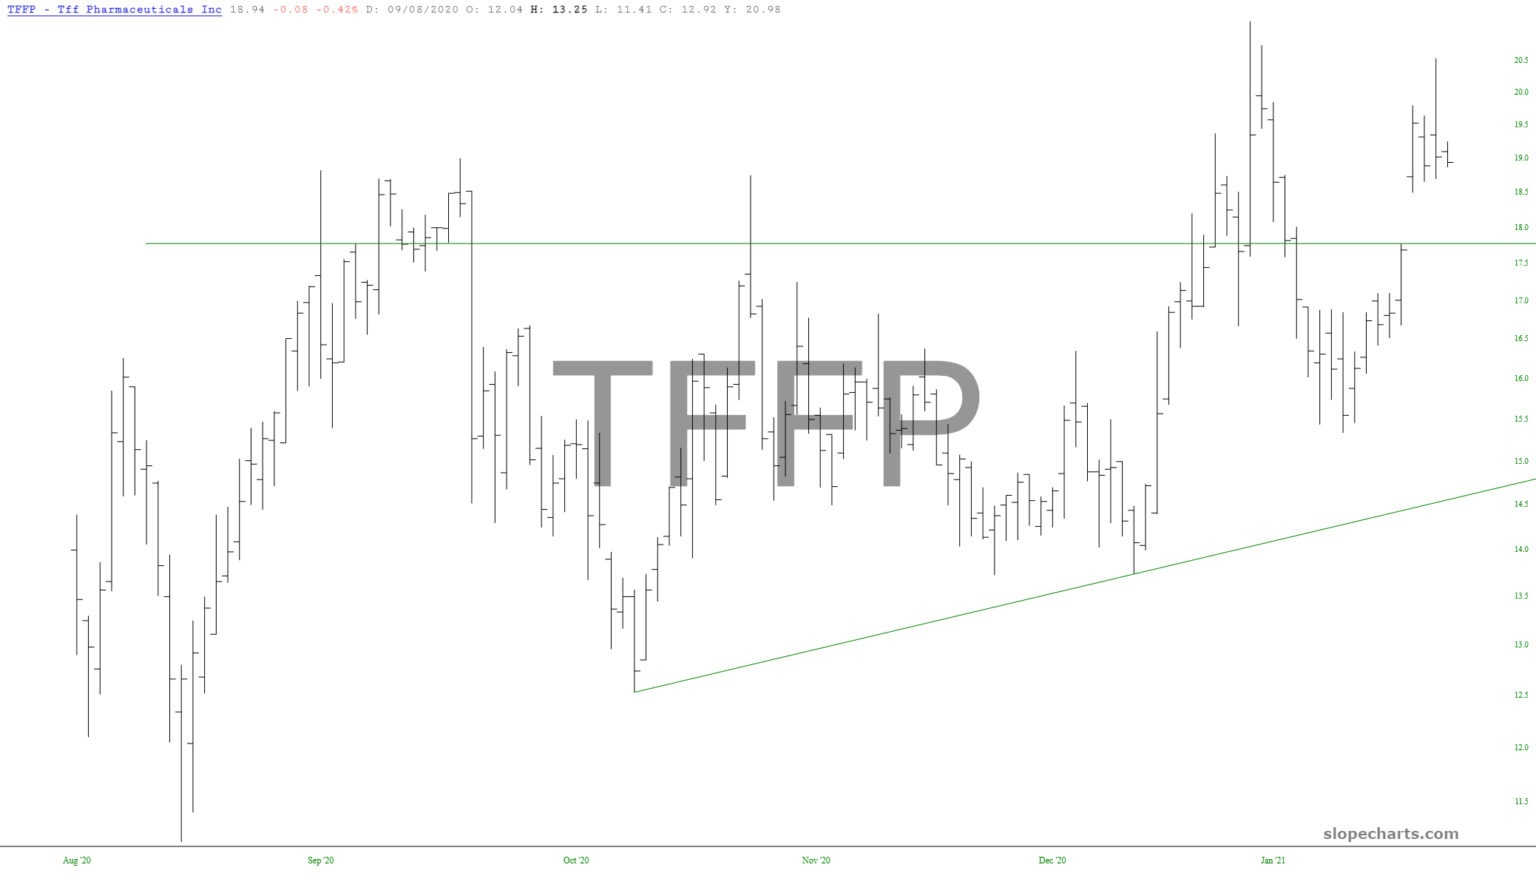 TFF Pharmaceuticals Inc Daily Chart.